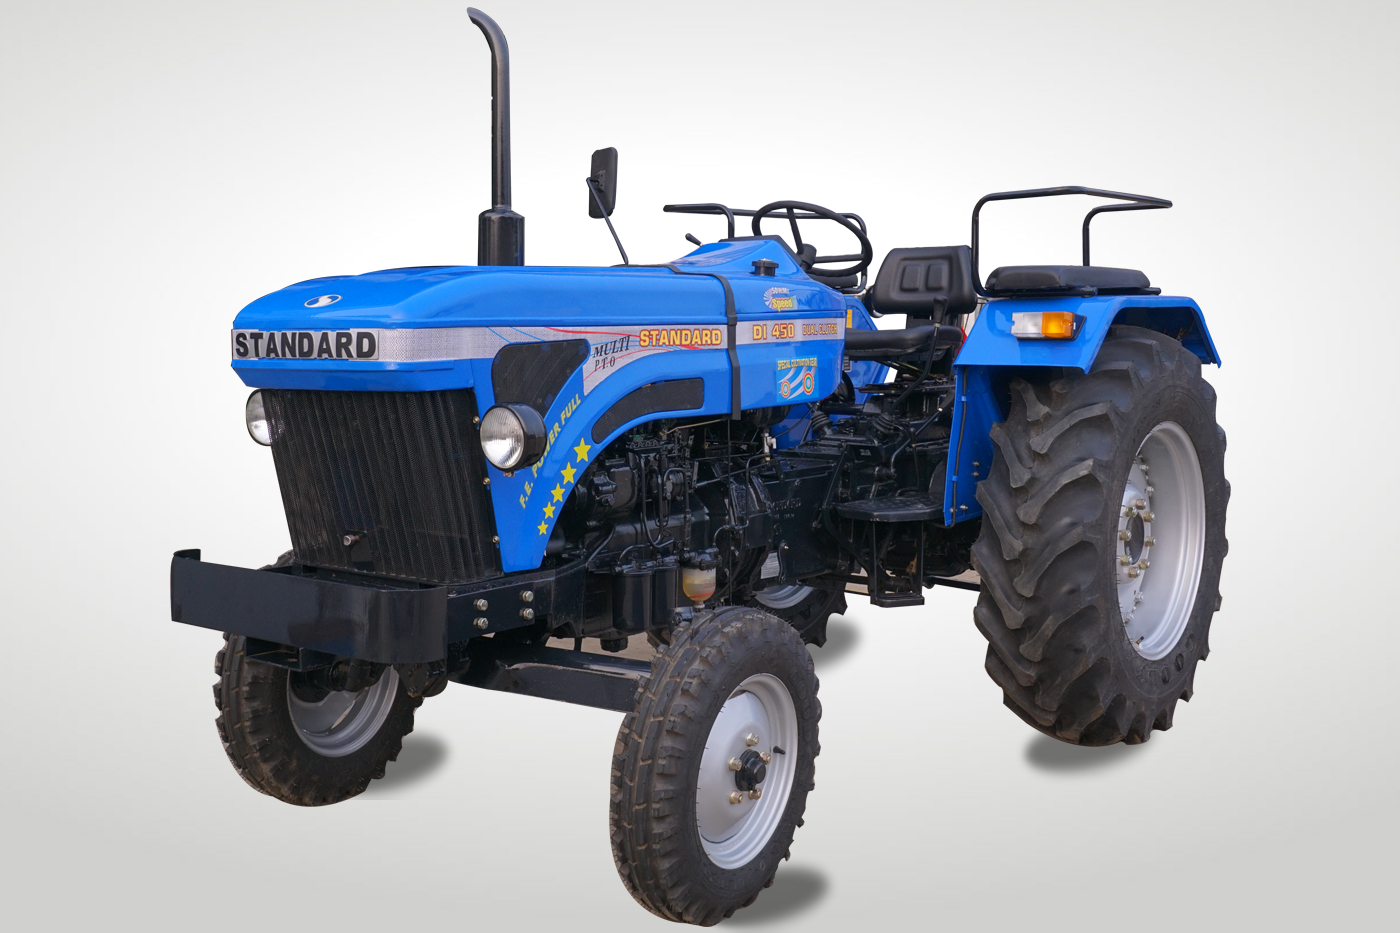 Standard DI 450 Tractor On-road Price in India. Standard DI 450 Tractor features and Specification, Review Full Videos